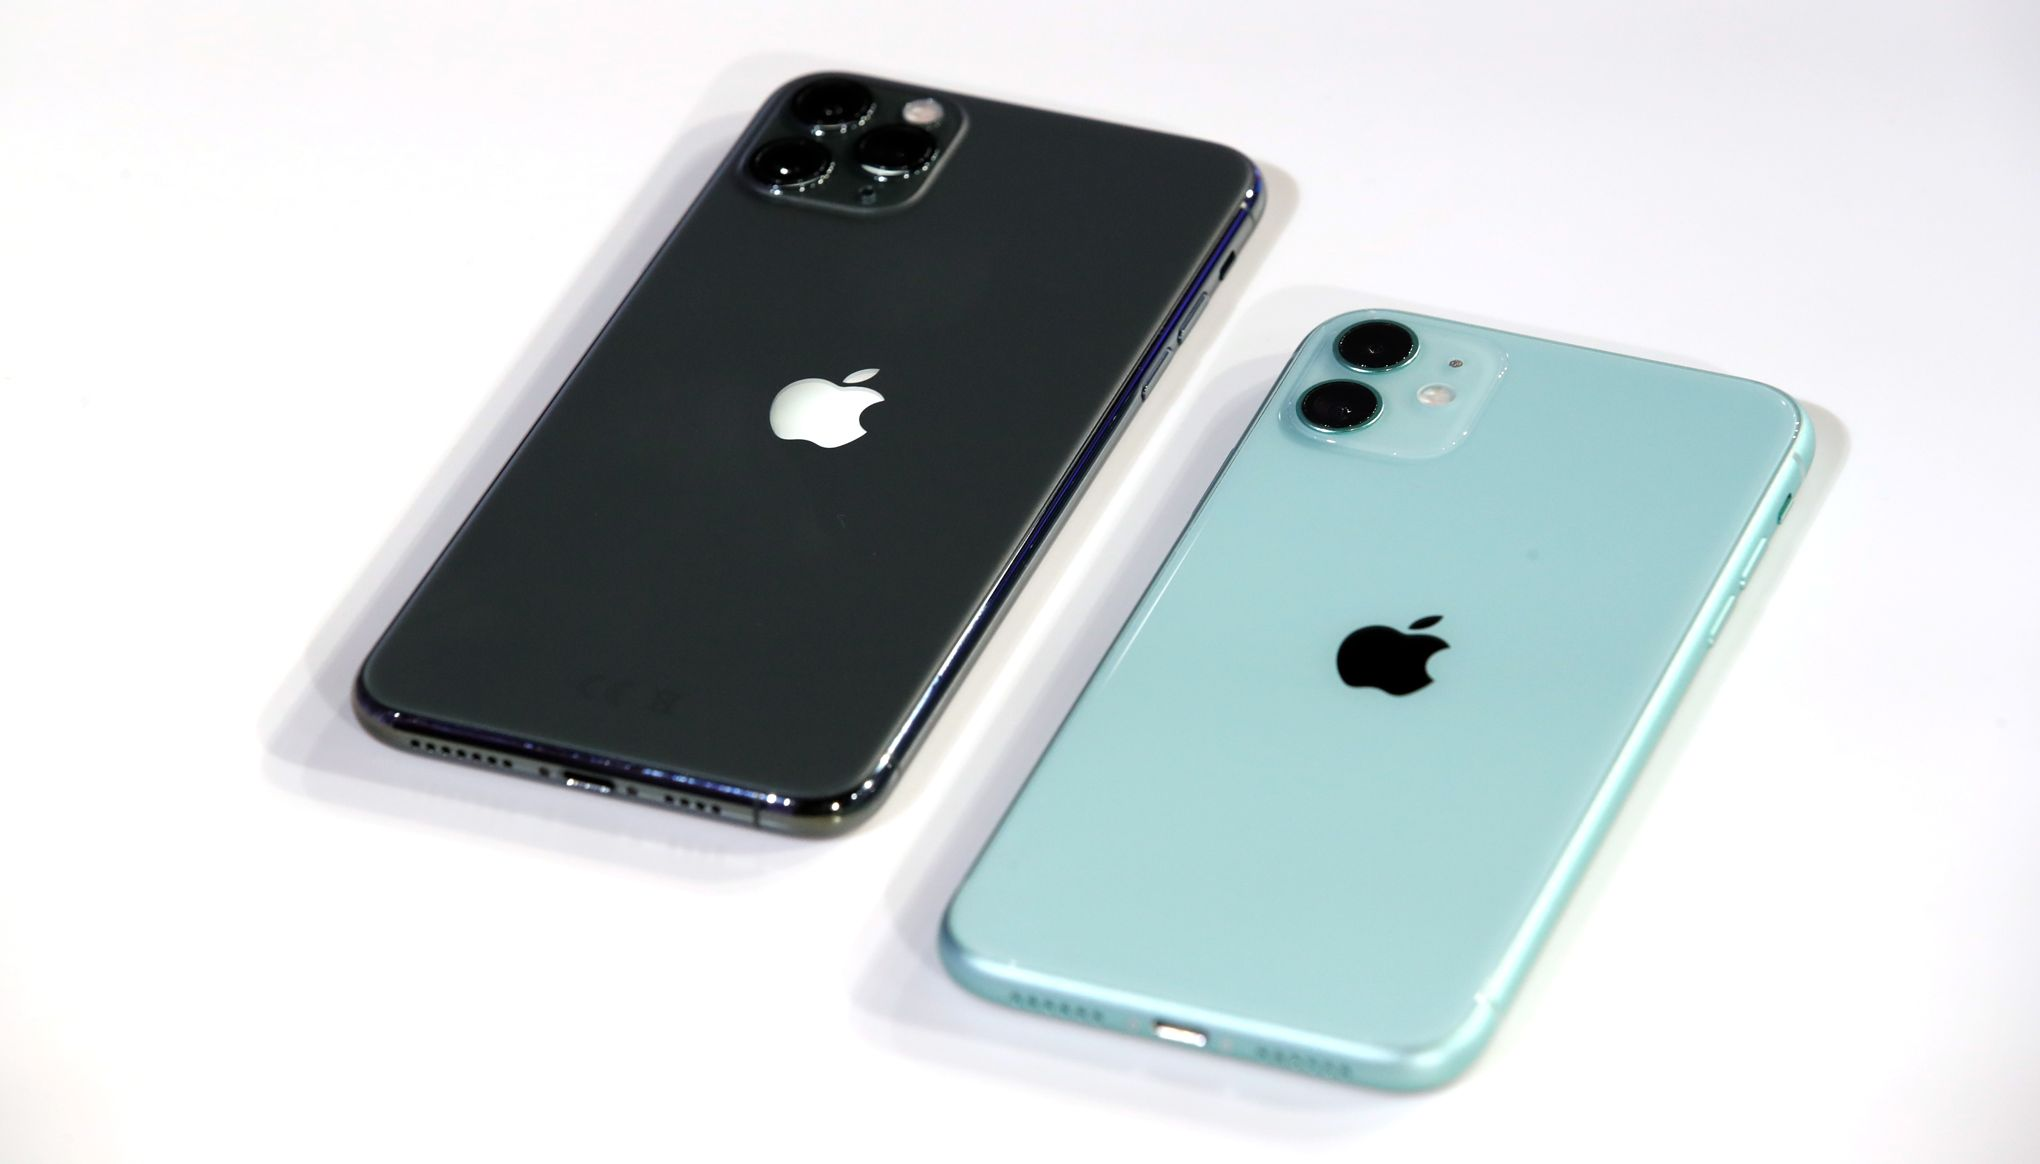 Notre test de l'iPhone 11 et de l'iPhone 11 Pro: le verdict du Figaro